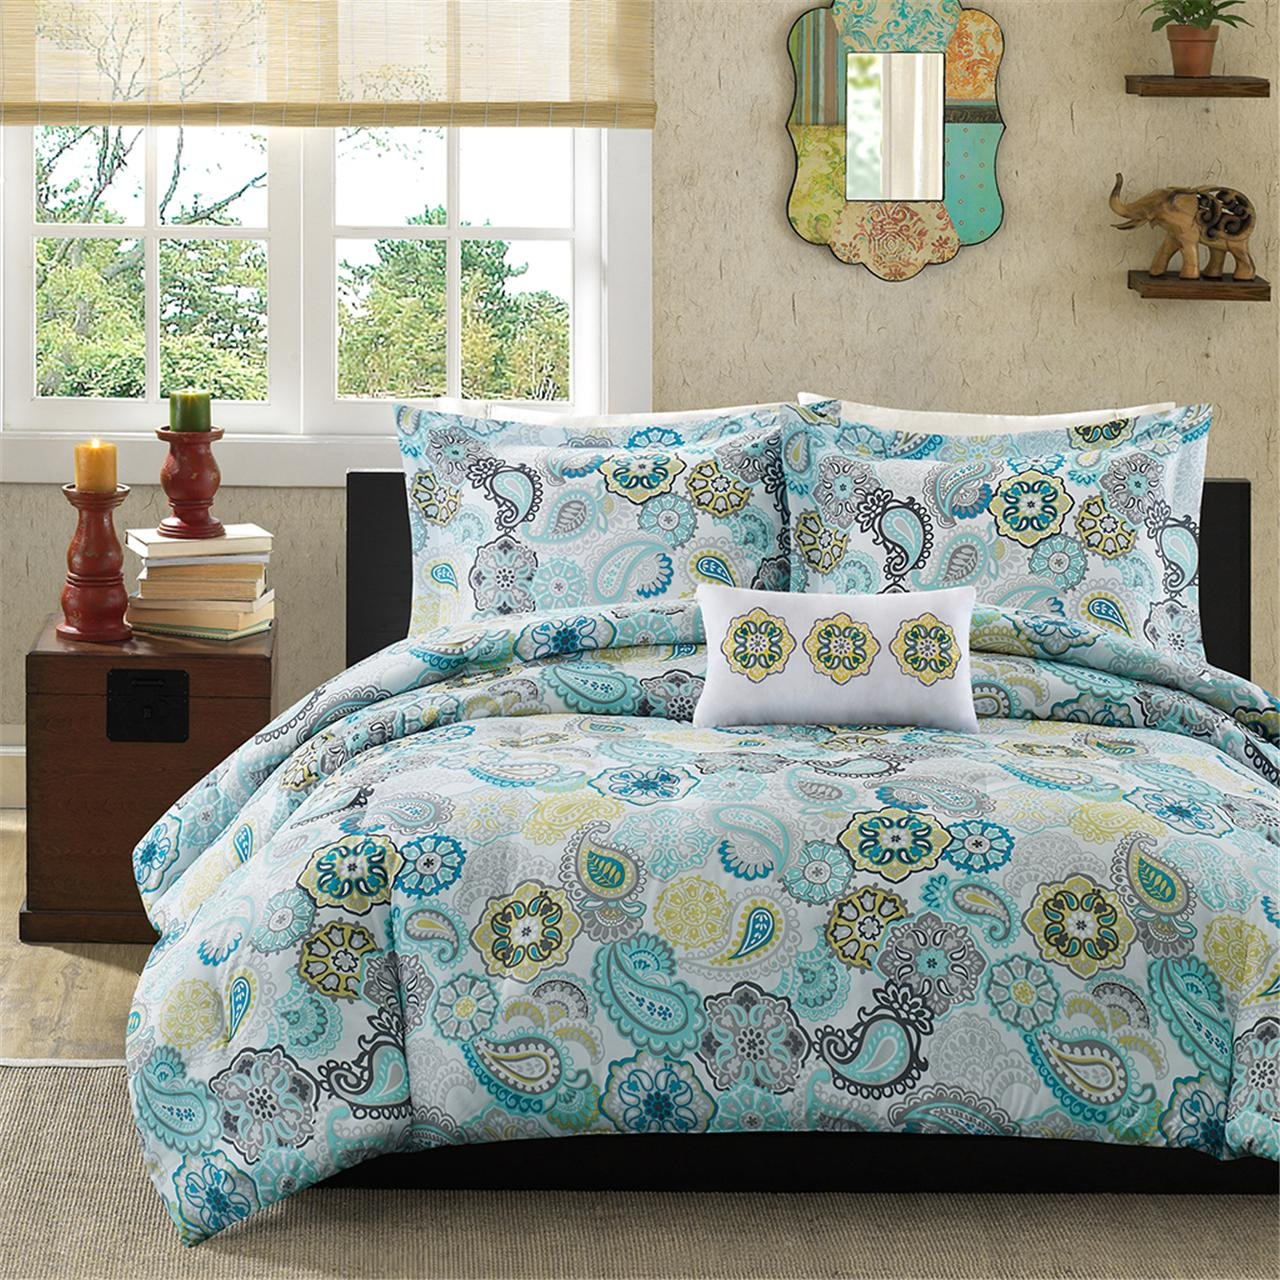 Mi-Zone Tamil Comforter Set Twin/Twin XL Size - Blue White, Floral – 3 Piece Bed Sets – Ultra Soft Microfiber Teen Bedding for Girls Bedroom